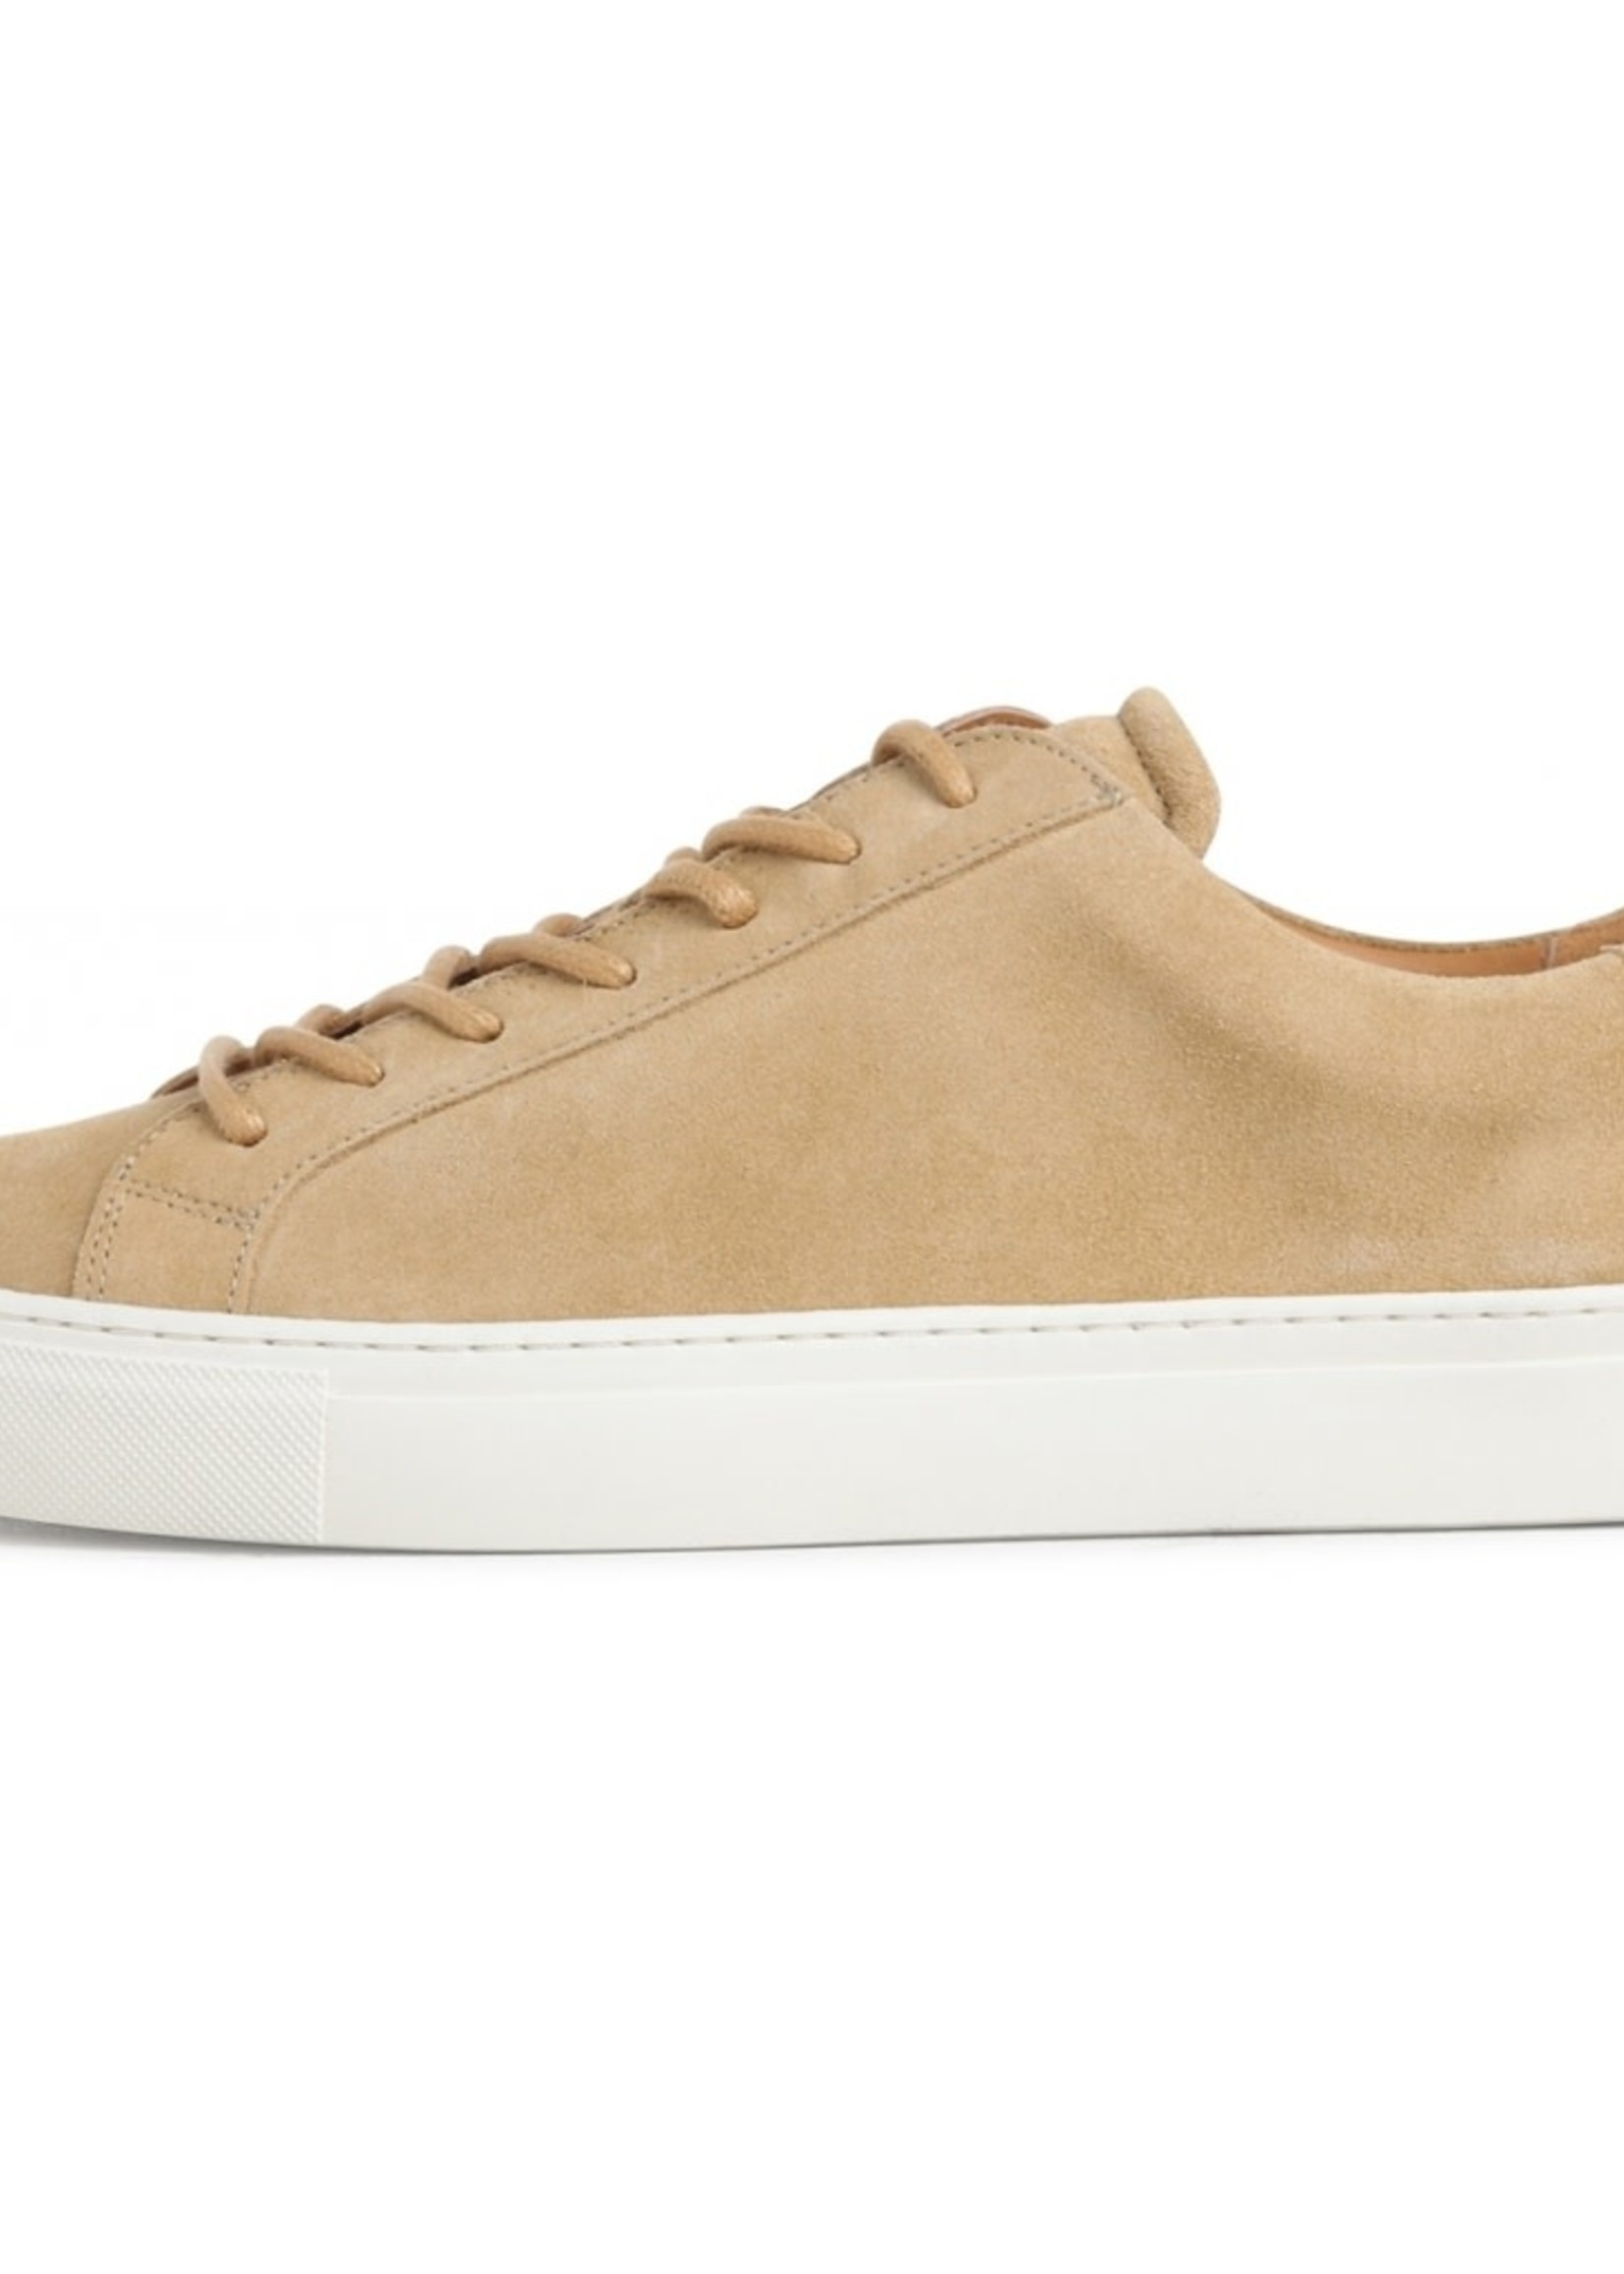 Garment Project Type Lux - Light Mustard Suede